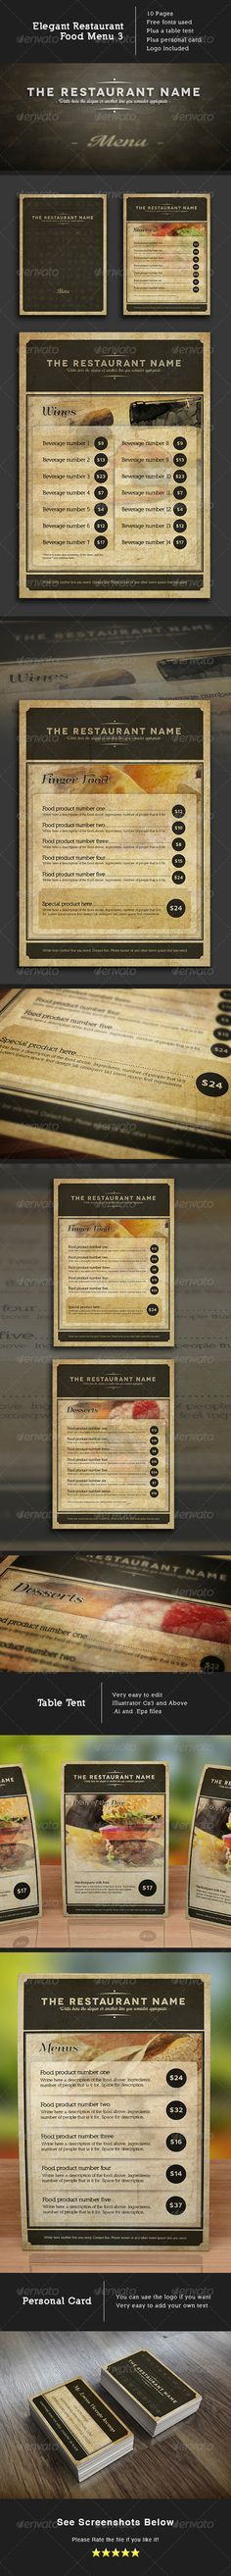 Elegant Food Menu 3 - Food Menus Print Templates Download here : http://graphicriver.net/item/elegant-food-menu-3/5282249?s_rank=1320&ref=Al-fatih